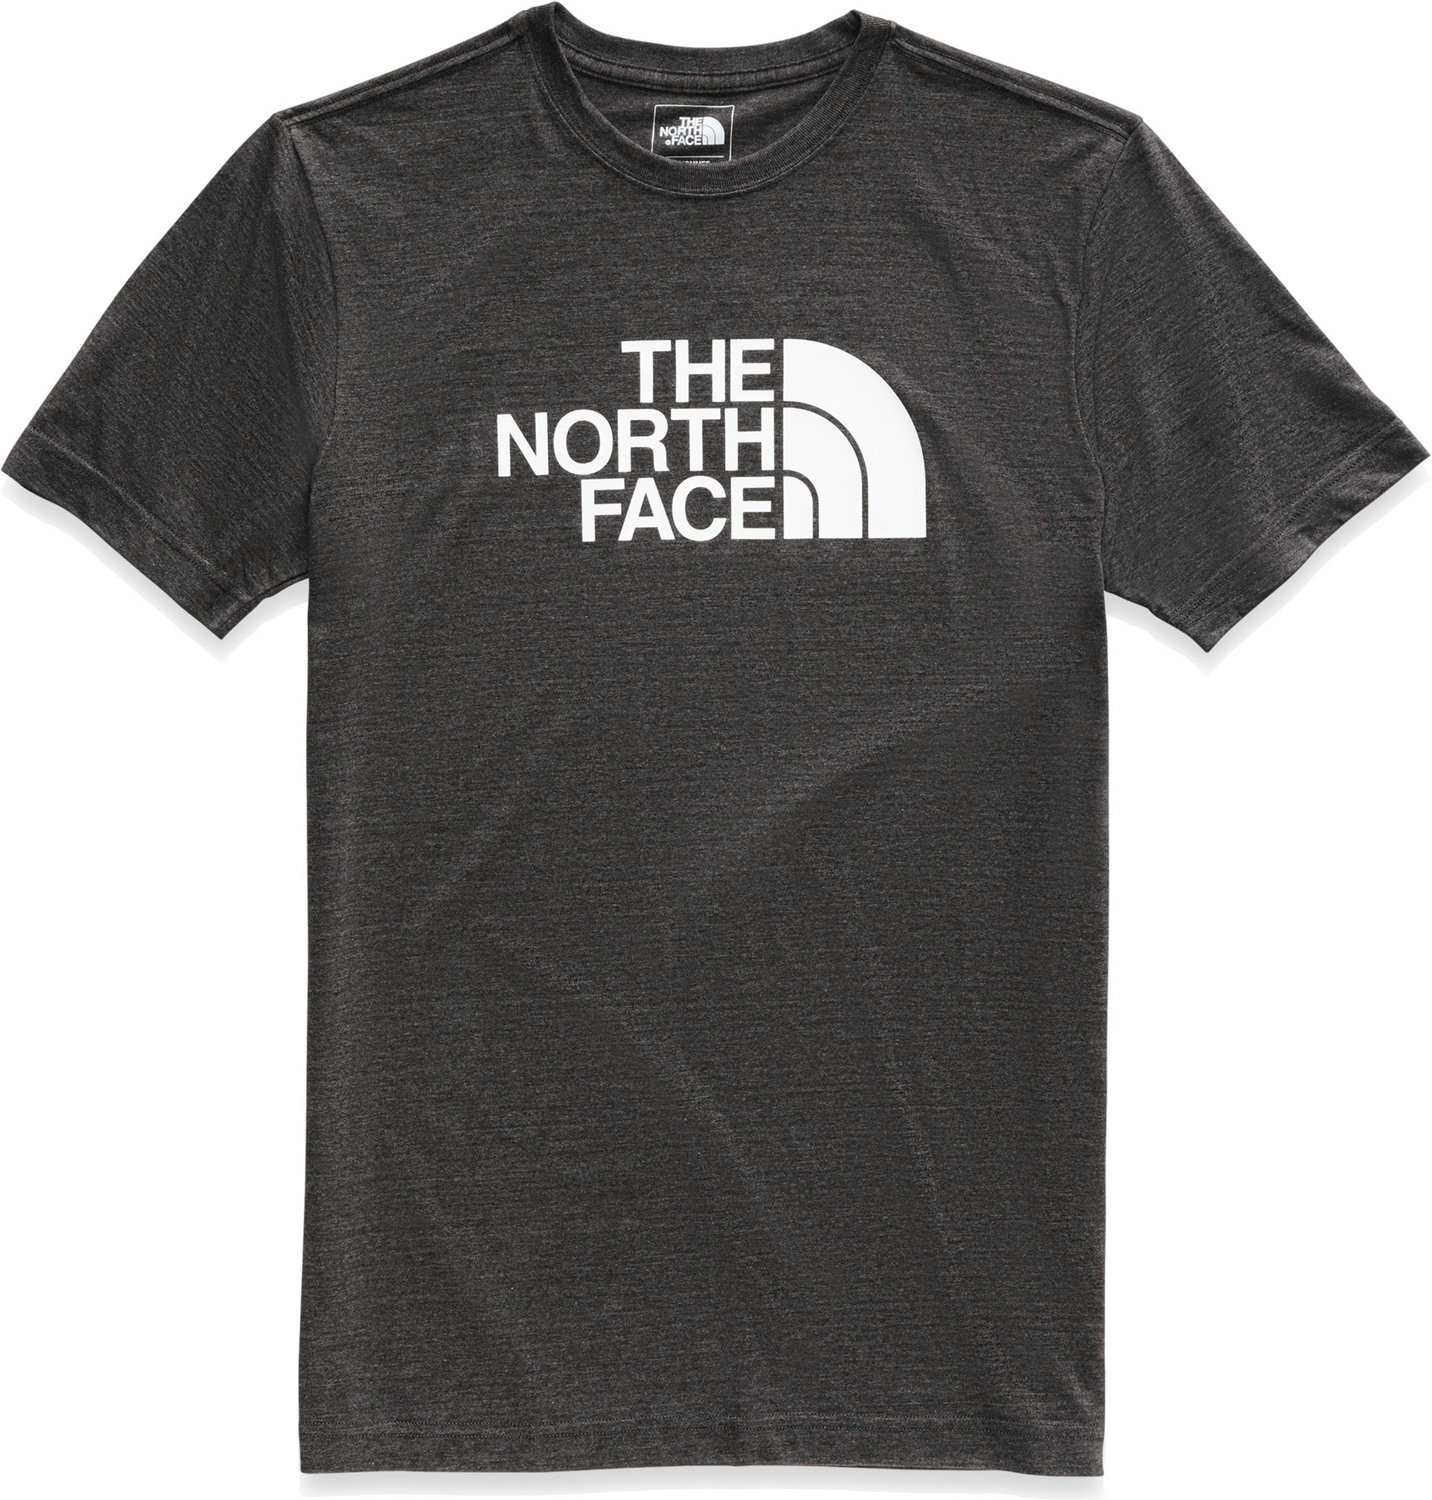 539361ba Display product reviews for The North Face Men's Half Dome Triblend Short  Sleeve T-shirt